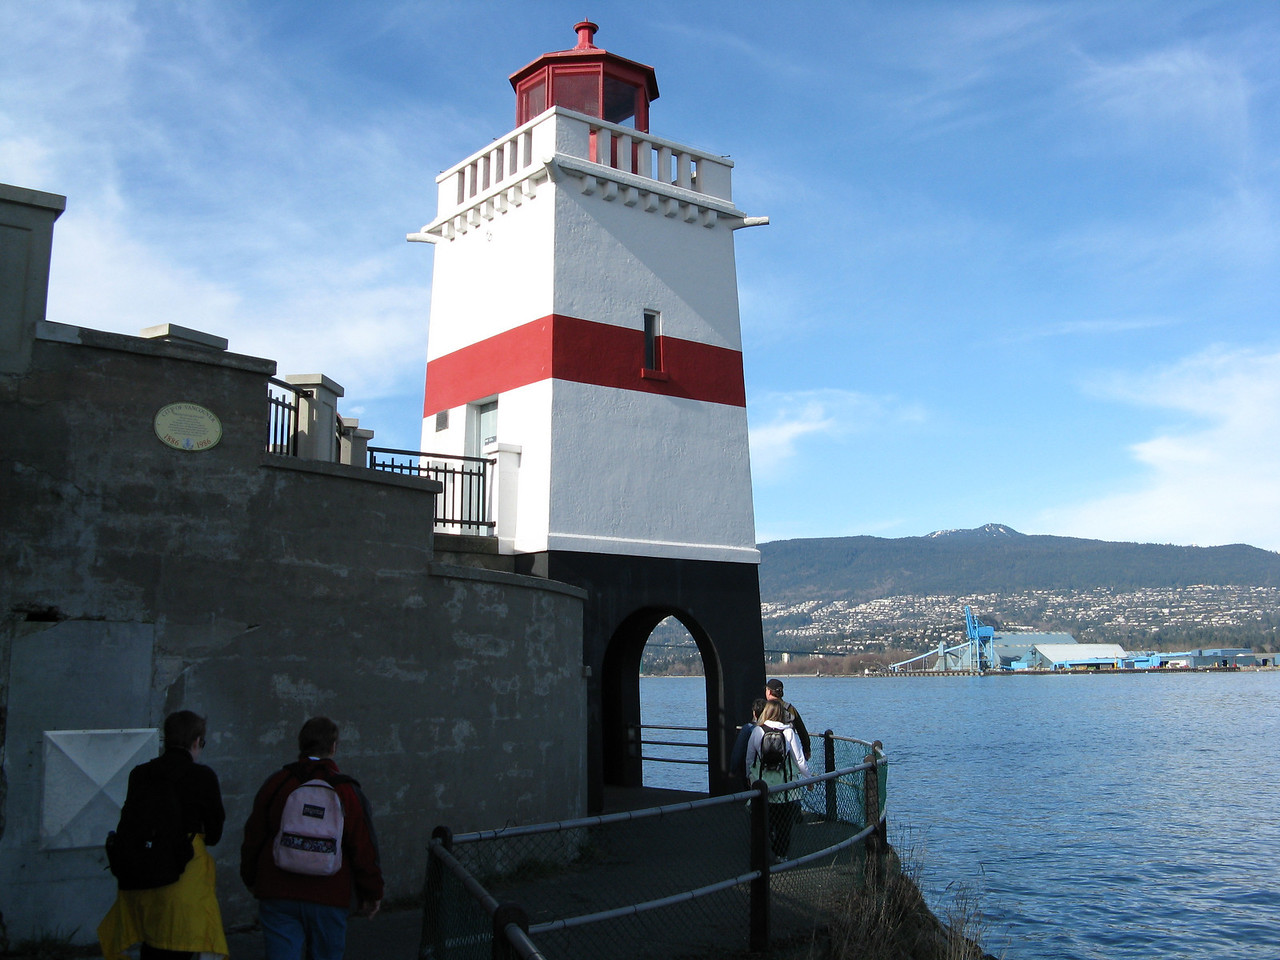 Brockton Point Lighthouse facing Burrard Inlet on the east side of the park.